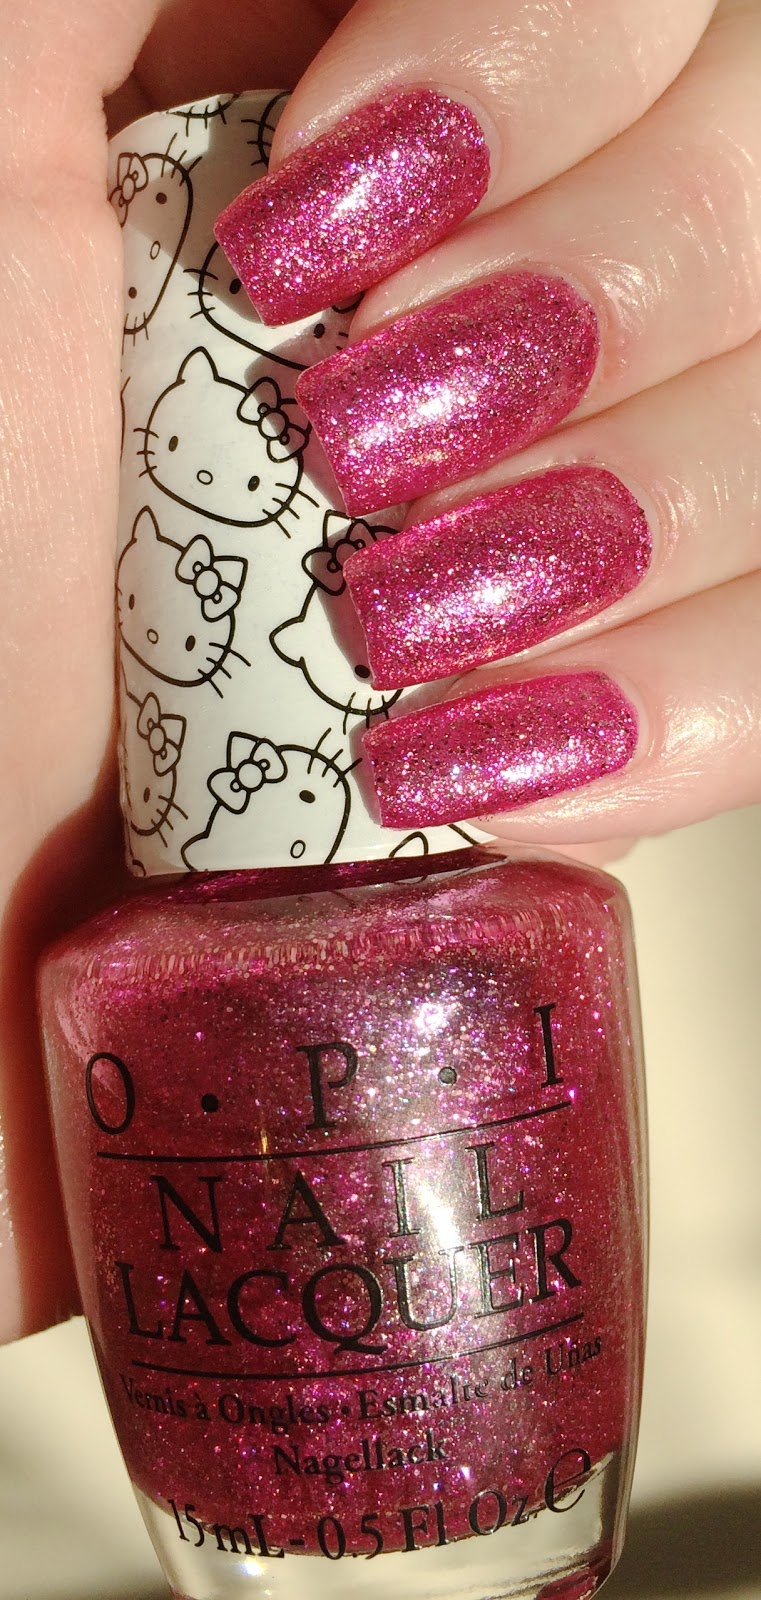 Maries Manor Hello Kitty: Blue Skies For Me Please: OPI's Hello Kitty Starry-Eyed